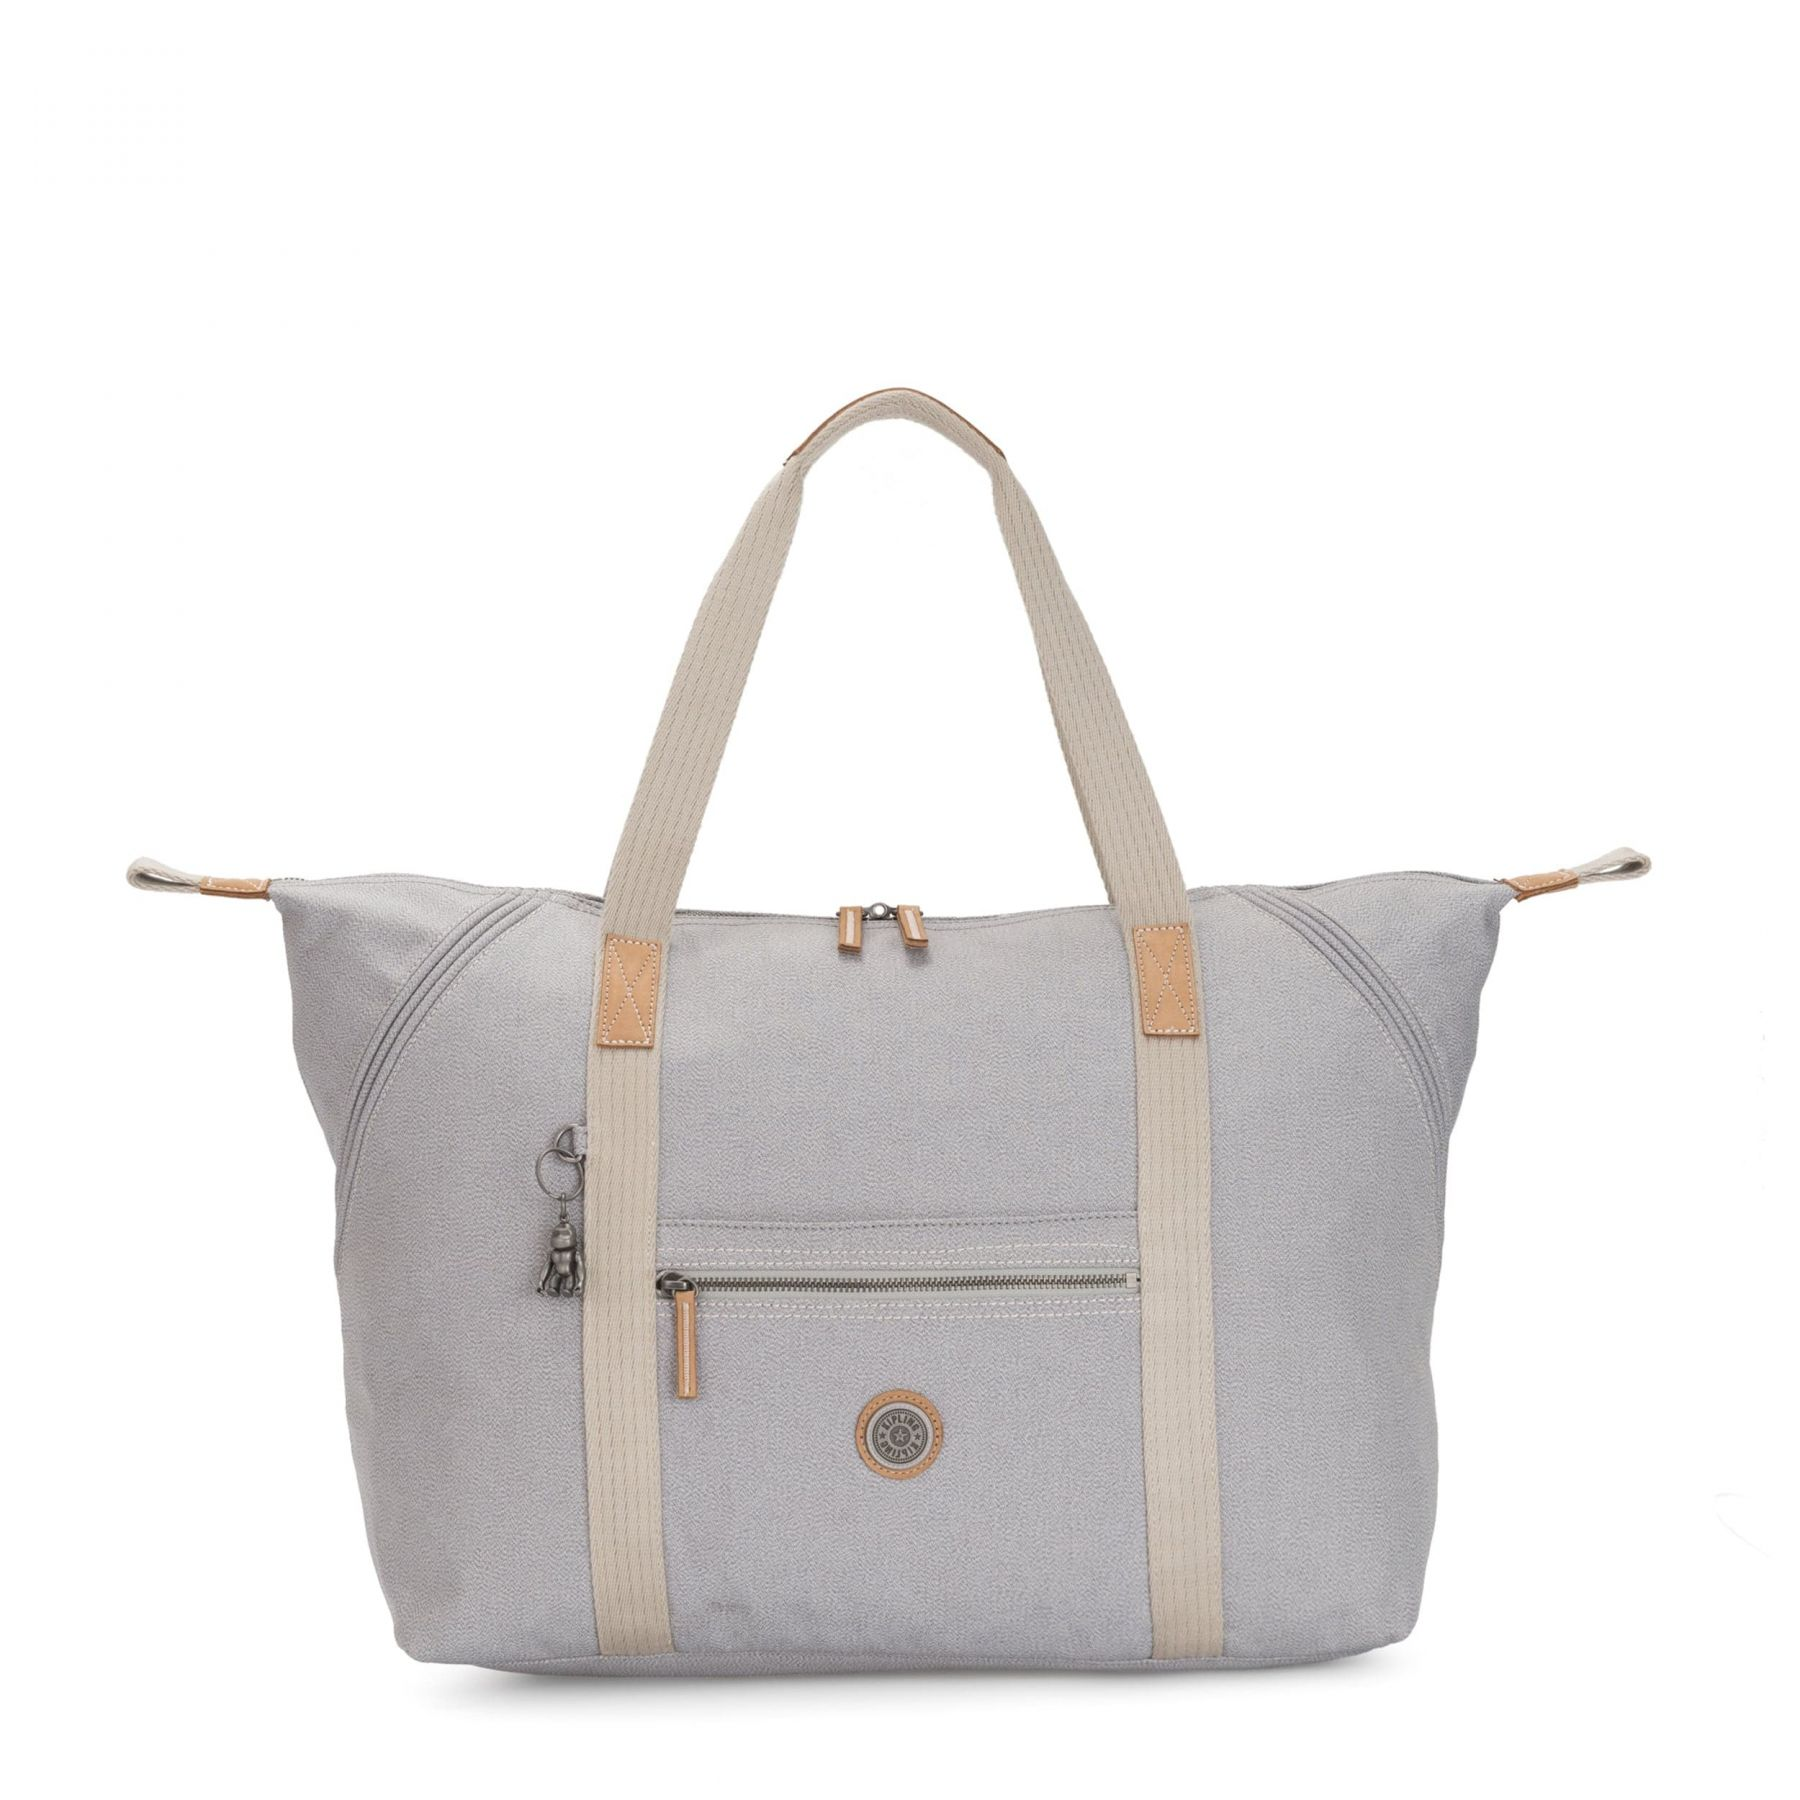 ART M Personalisation by Kipling - Front view